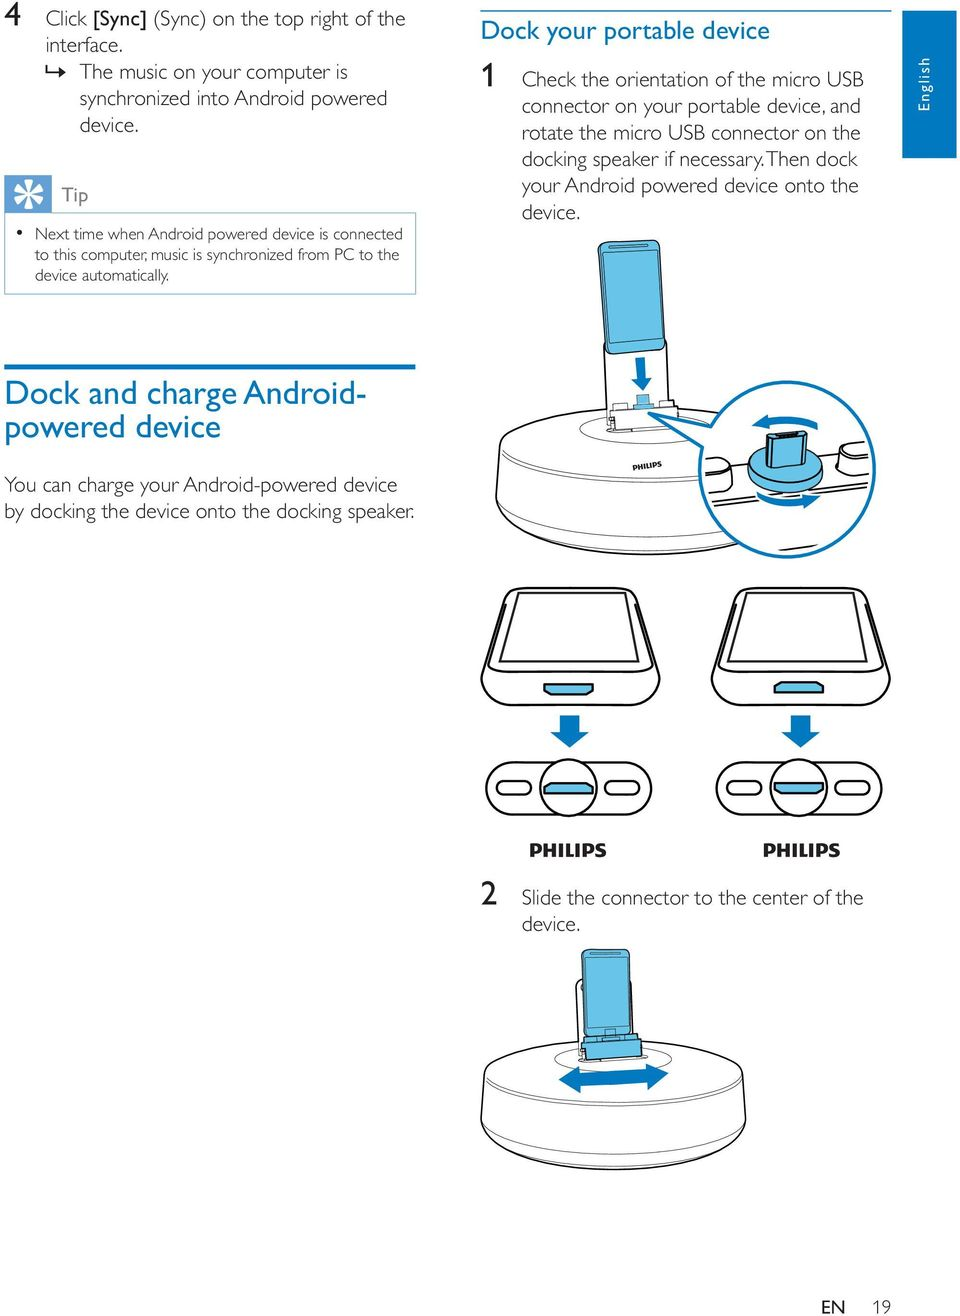 Dock your portable device 1 Check the orientation of the micro USB connector on your portable device, and rotate the micro USB connector on the docking speaker if